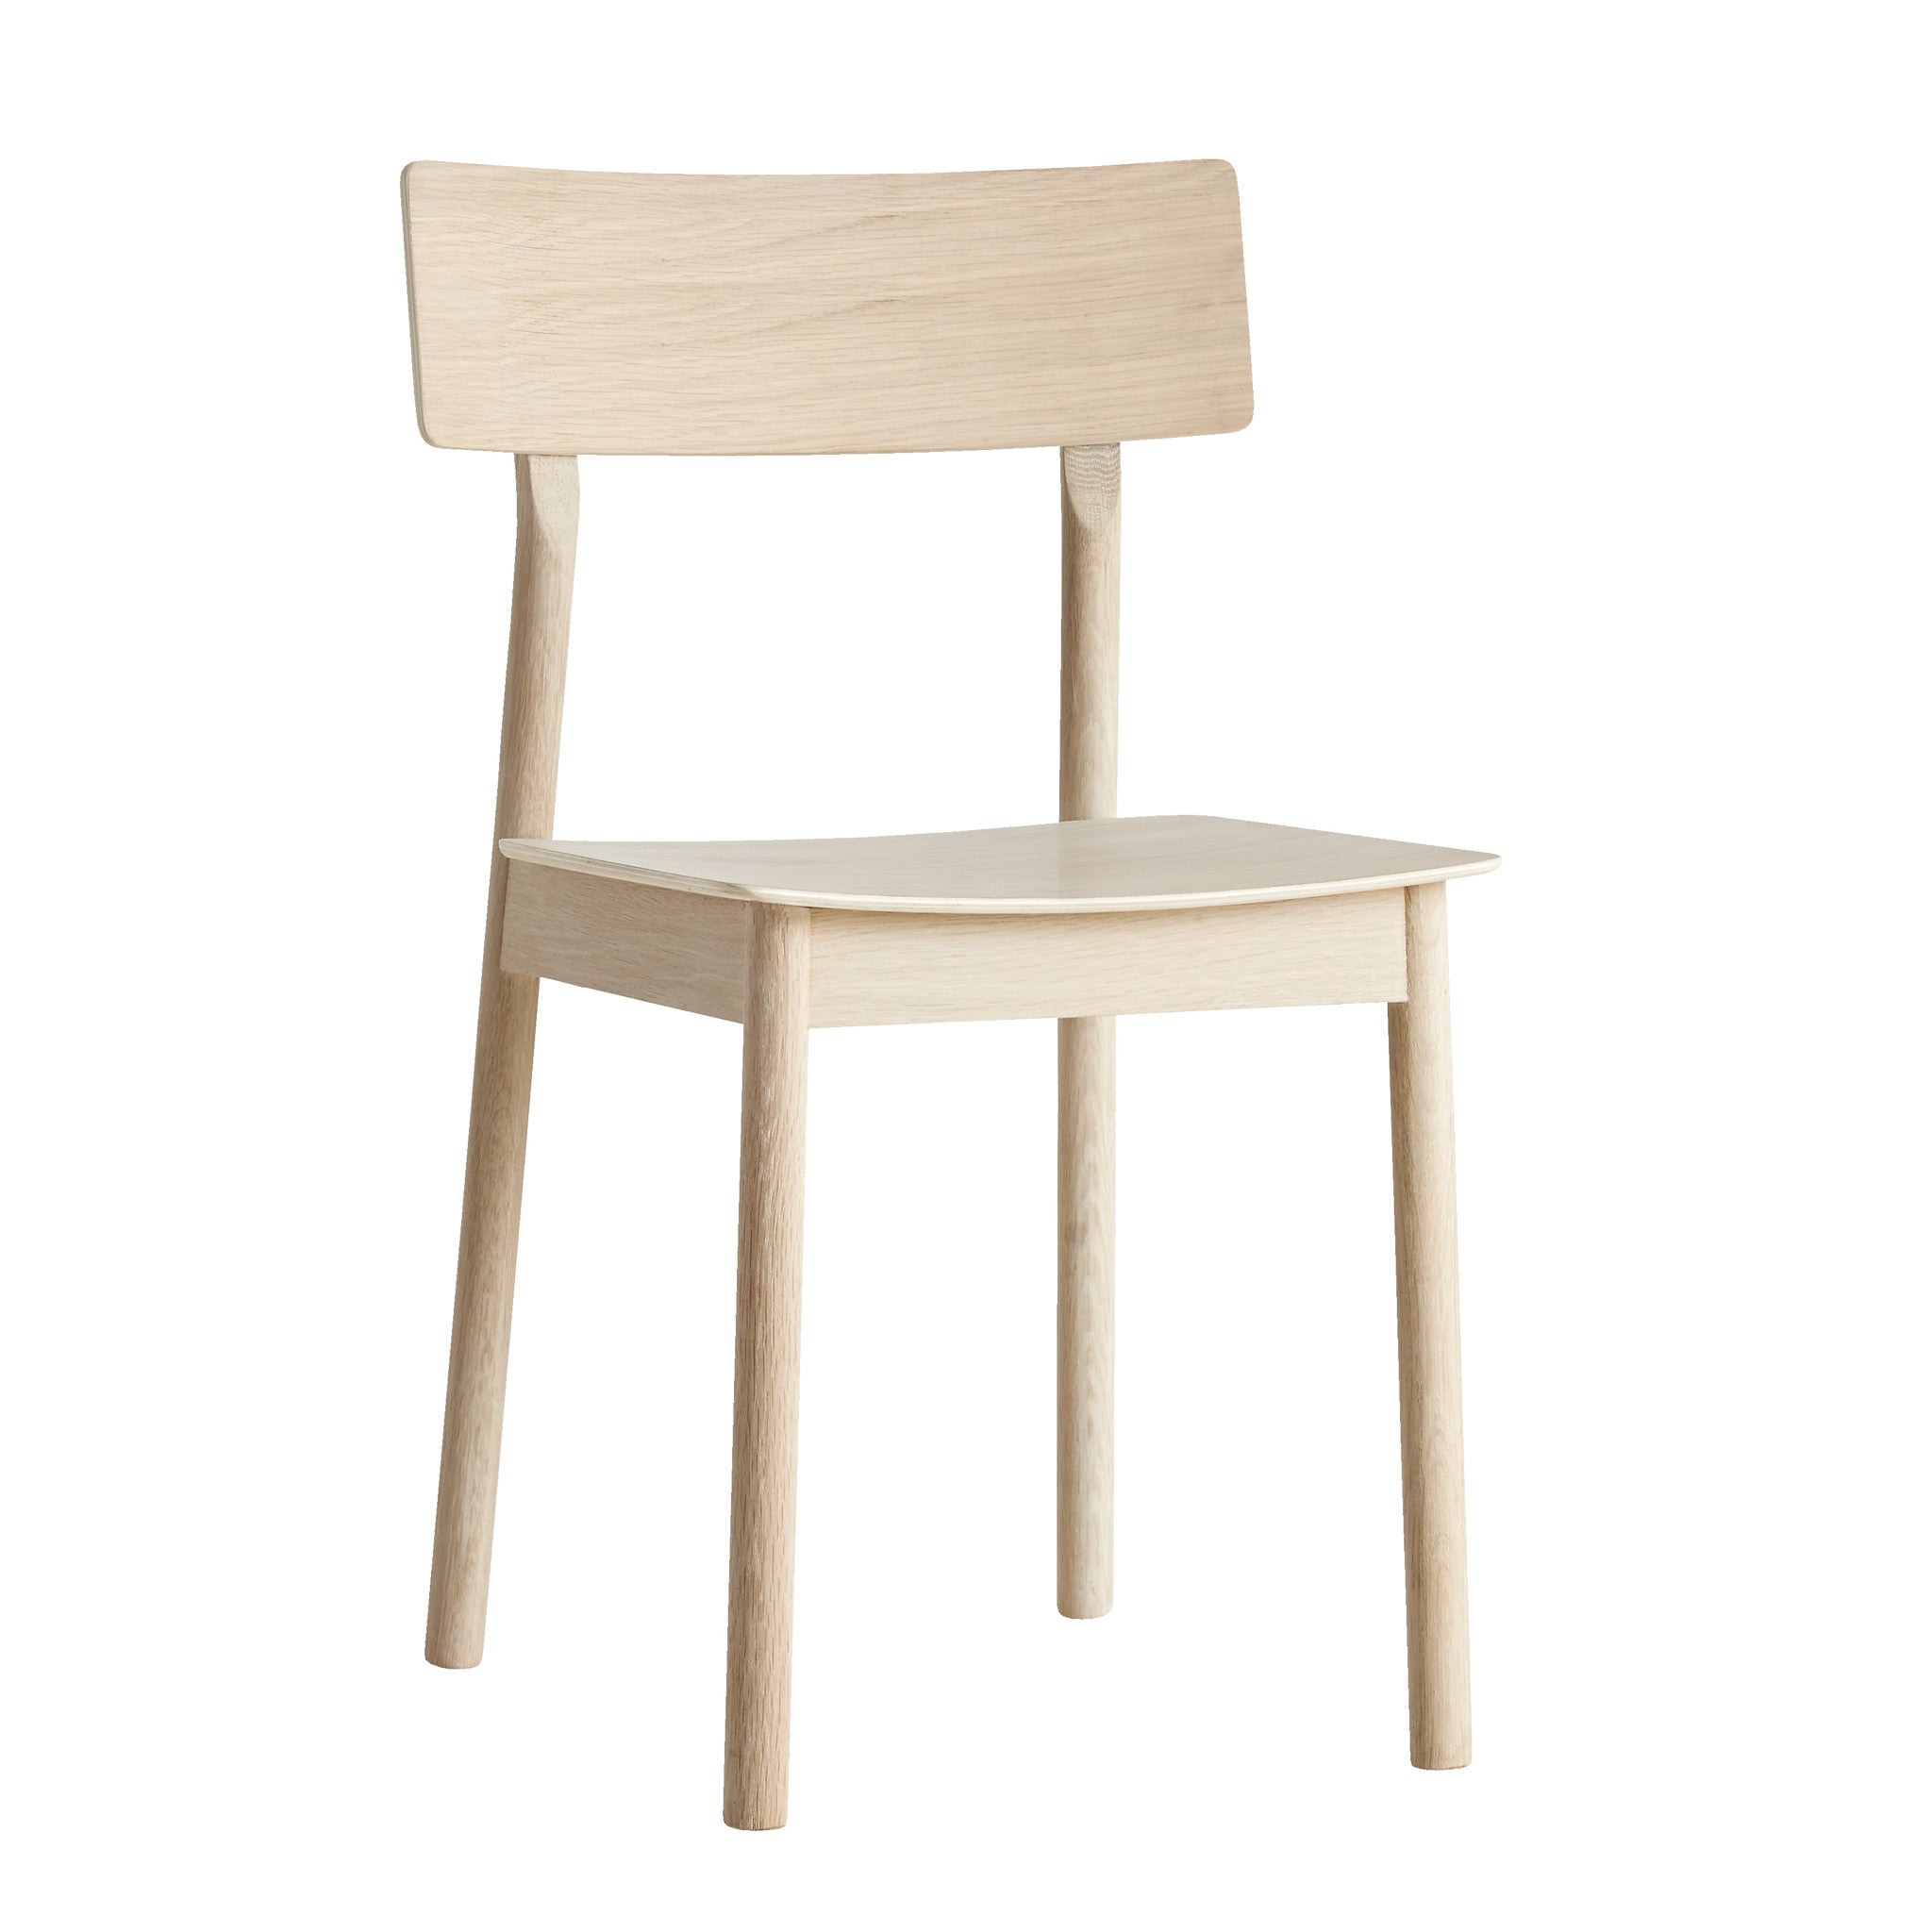 Pause Dining Chair by Kasper Nyman